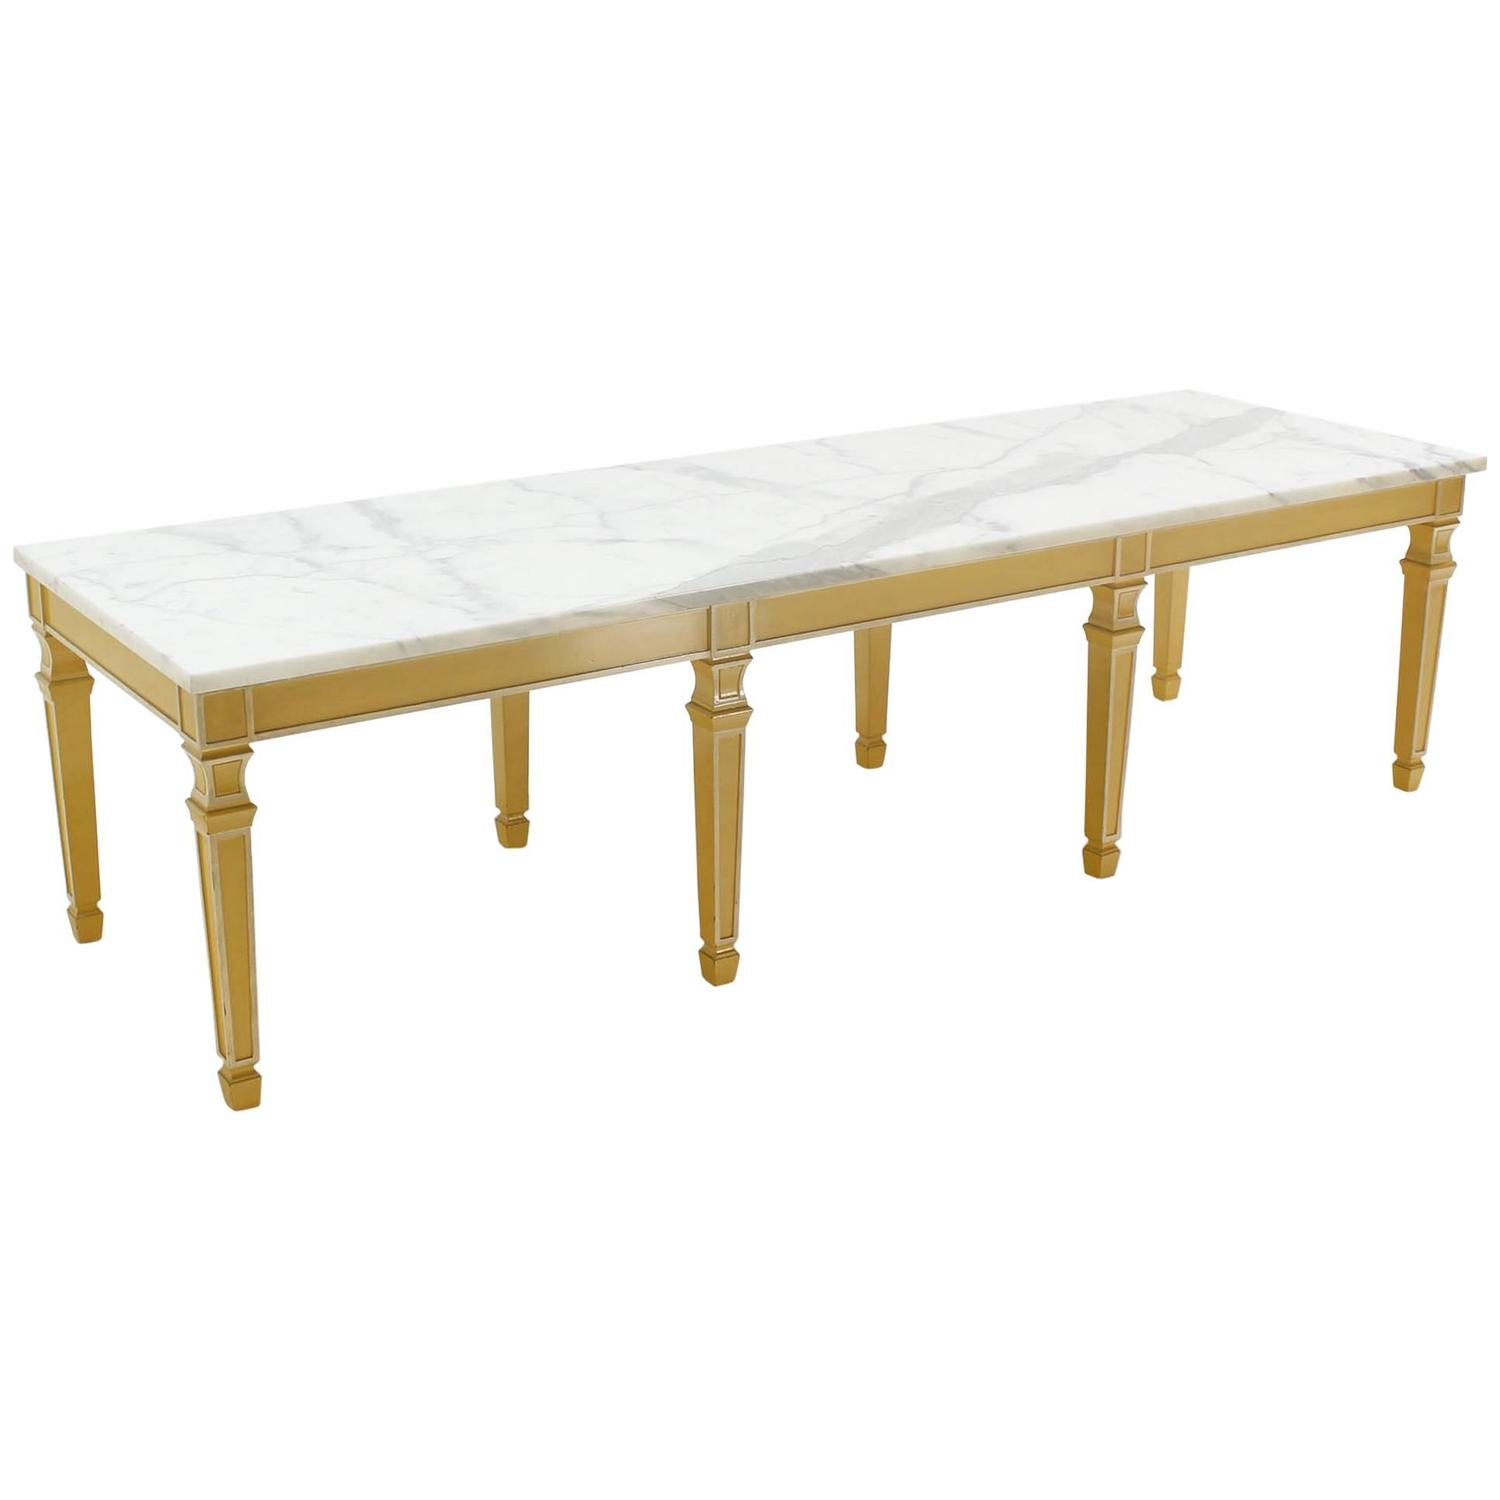 Six legged marble top rectangular coffee table for sale at for Marble top coffee table rectangle